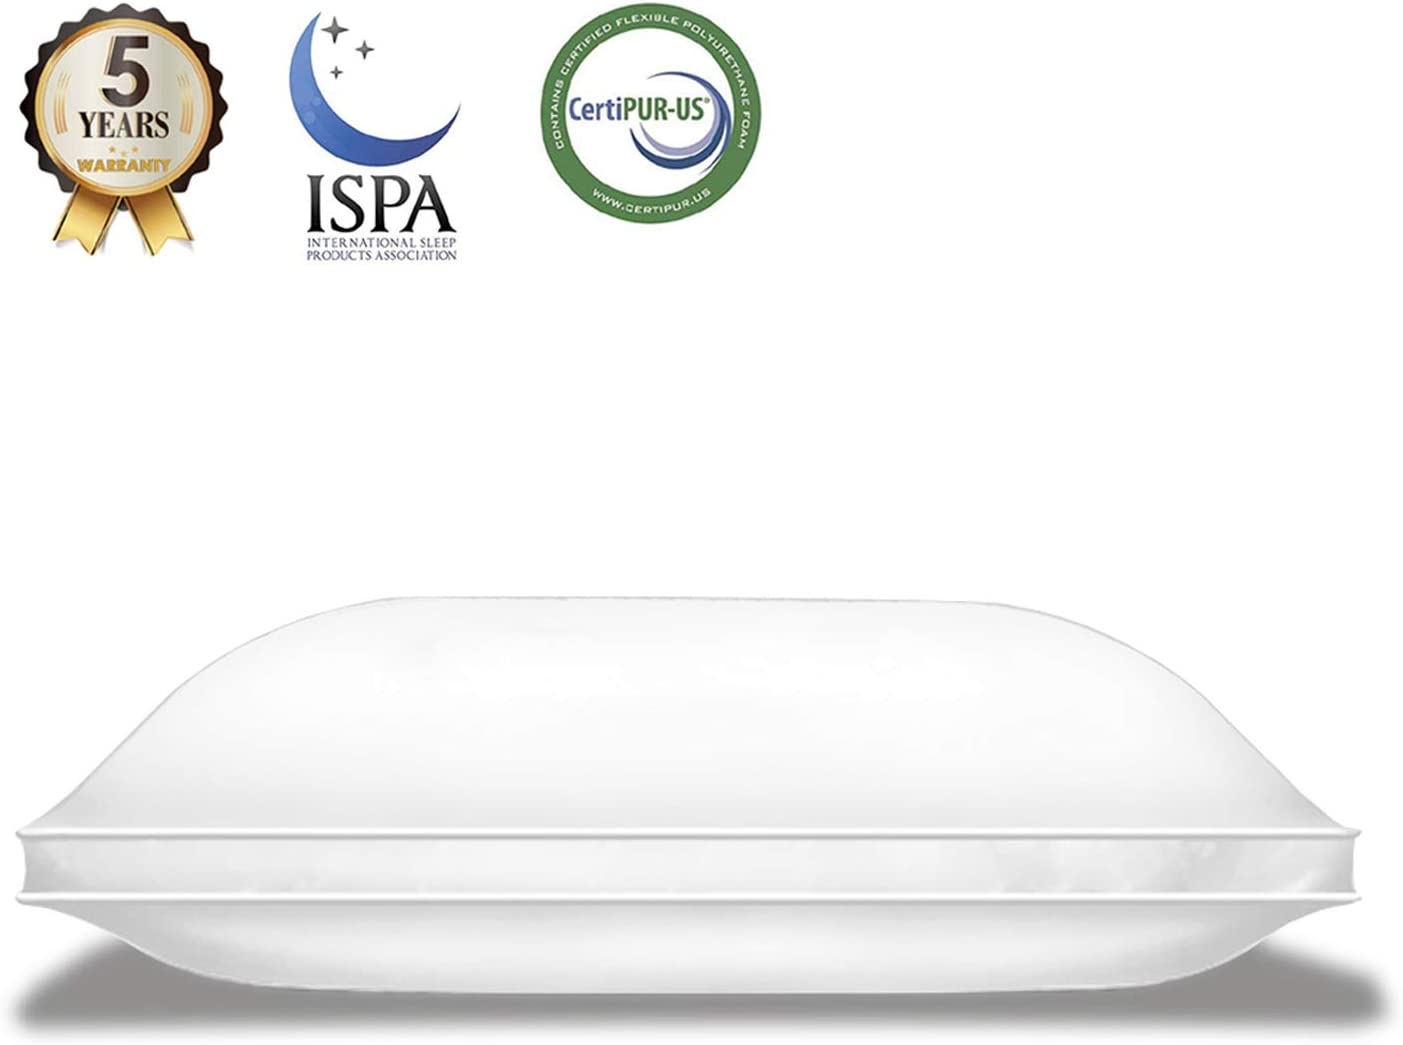 Lunvon Bed Pillows for Sleeping Super Soft Support Cotton Cover Protector Queen Gel Pillows Adjustable Shredded Memory Foam for Home Hotel Luxury Cooling Hypoallergenic CertiPUR-US, White